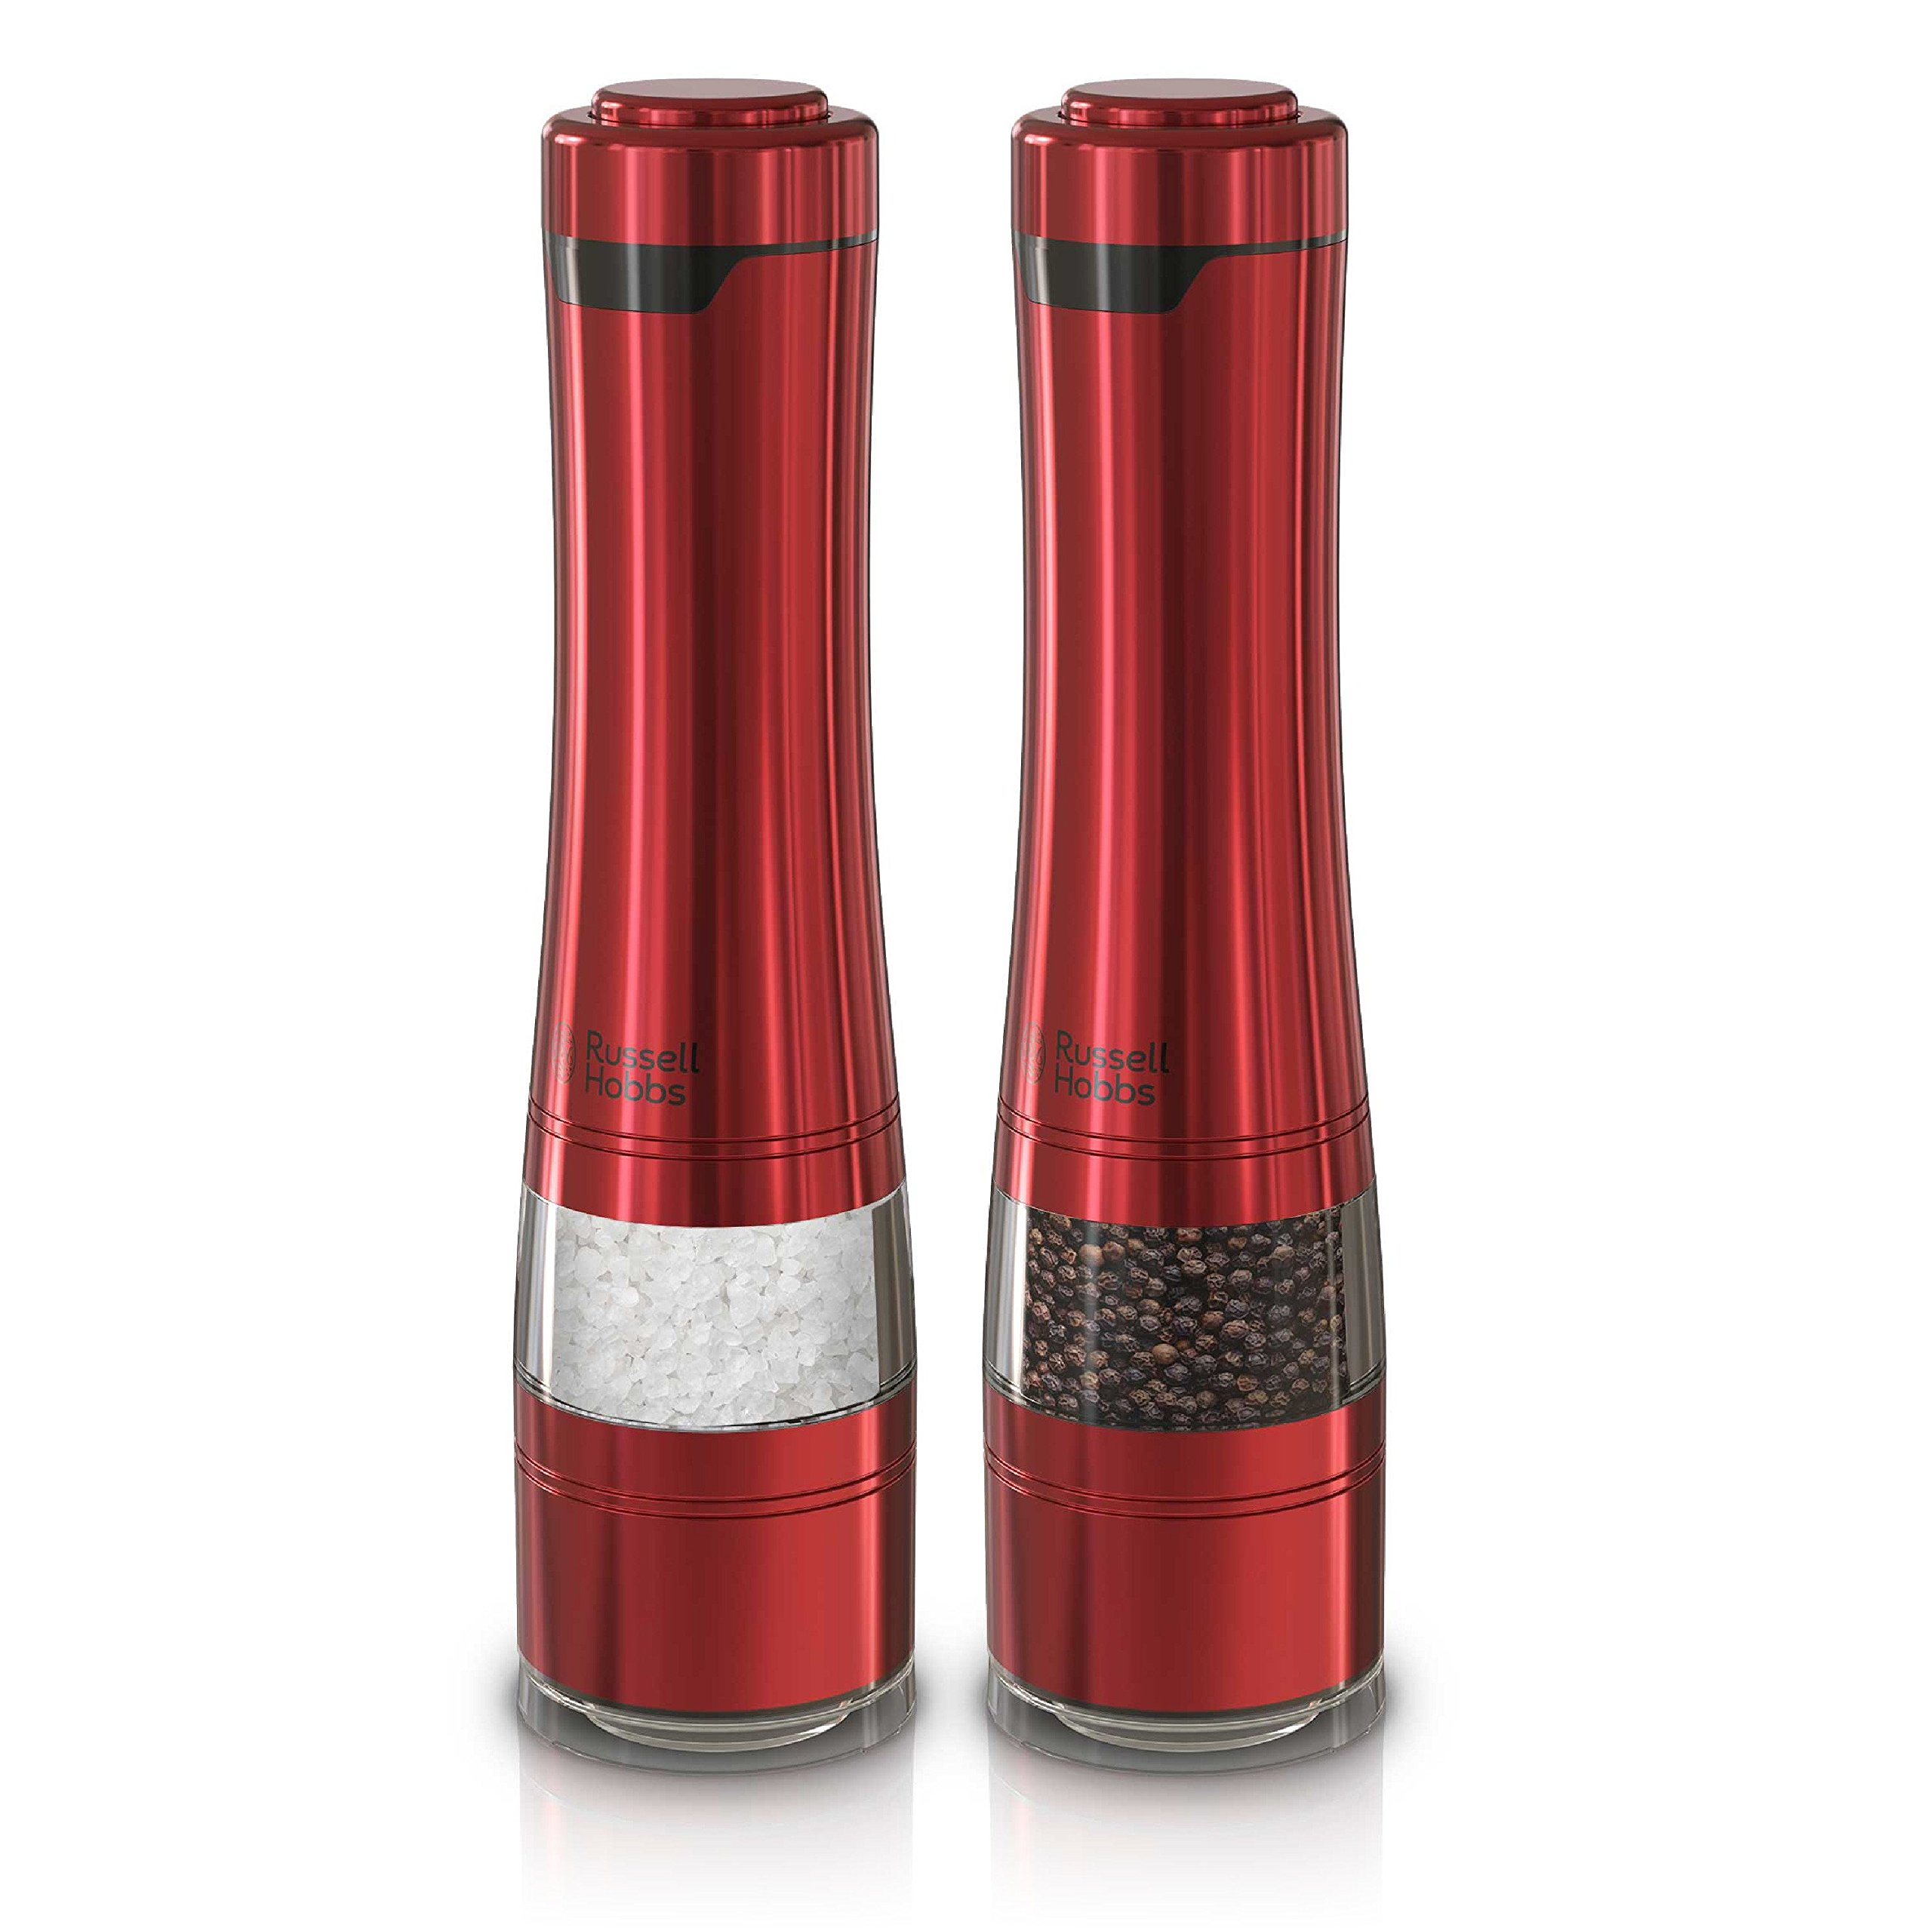 Russell Hobbs RHPK4100RED Electric Salt and Pepper Mill Set with Adjustable Coarseness, Set of 2 Grinders, Red